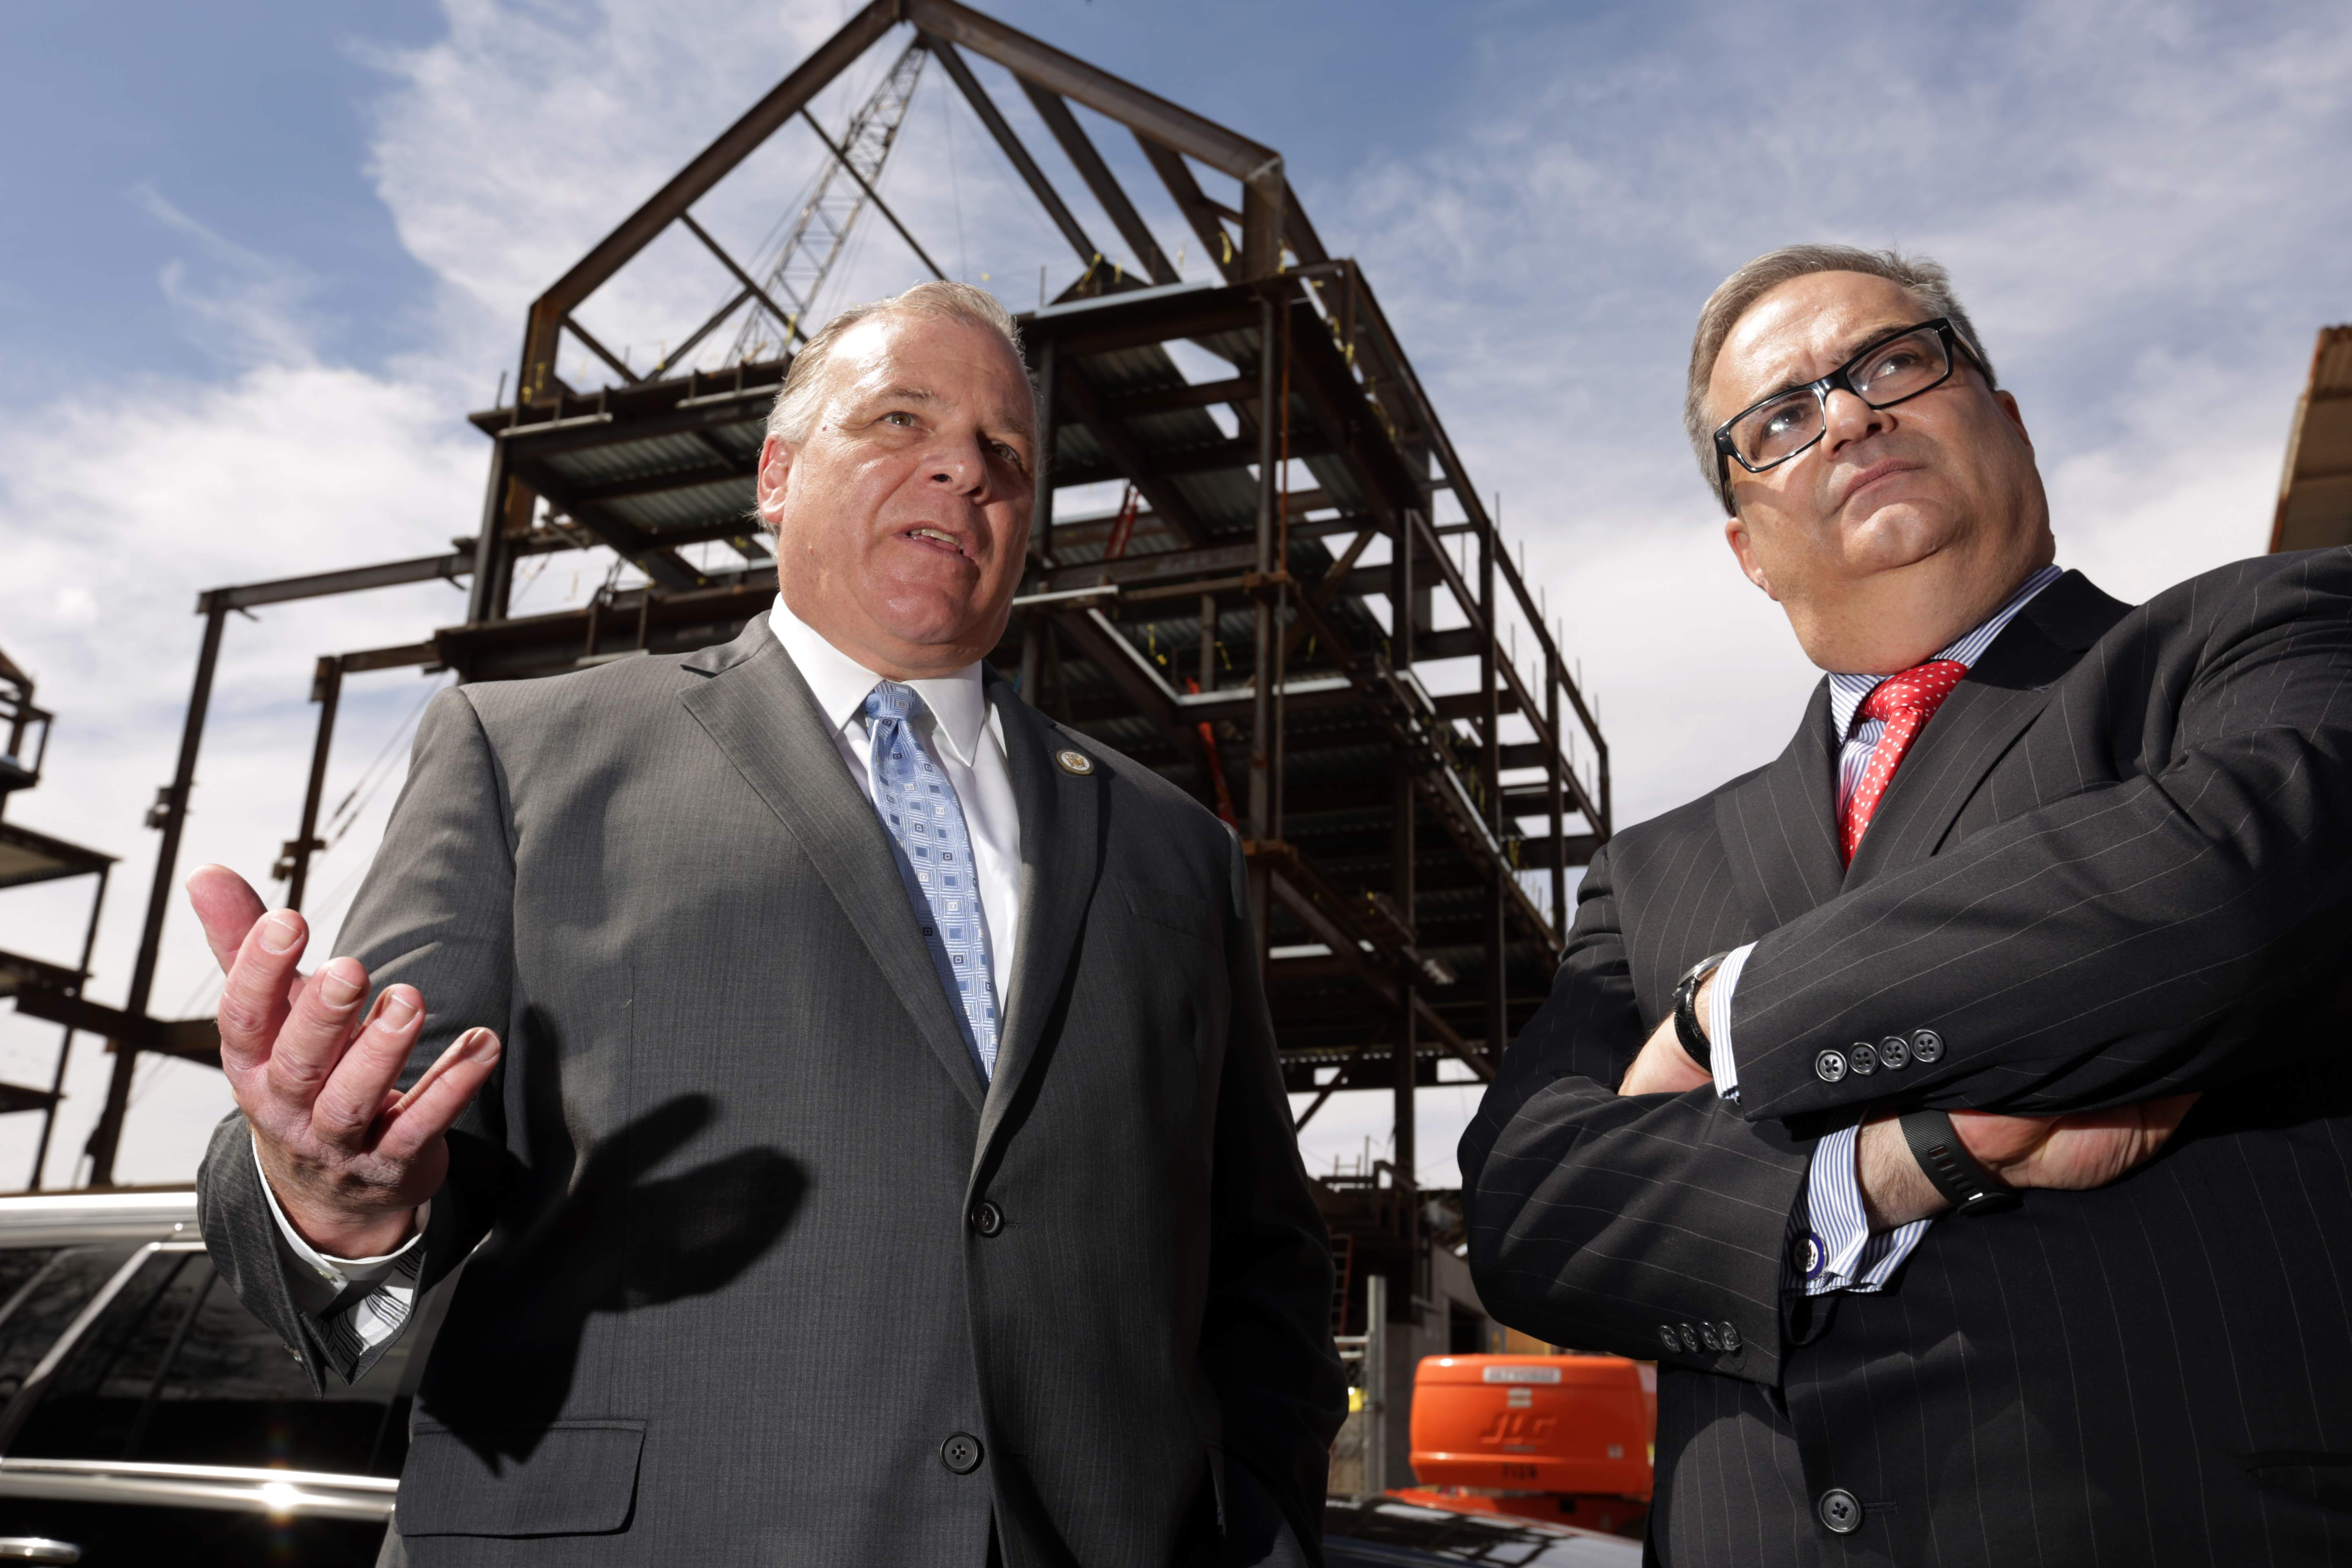 Standing in front of Rutgers' new Academic Building, left, and Honors College, Senate President Steve Sweeney, left, and Chris Paladino speak to the press.